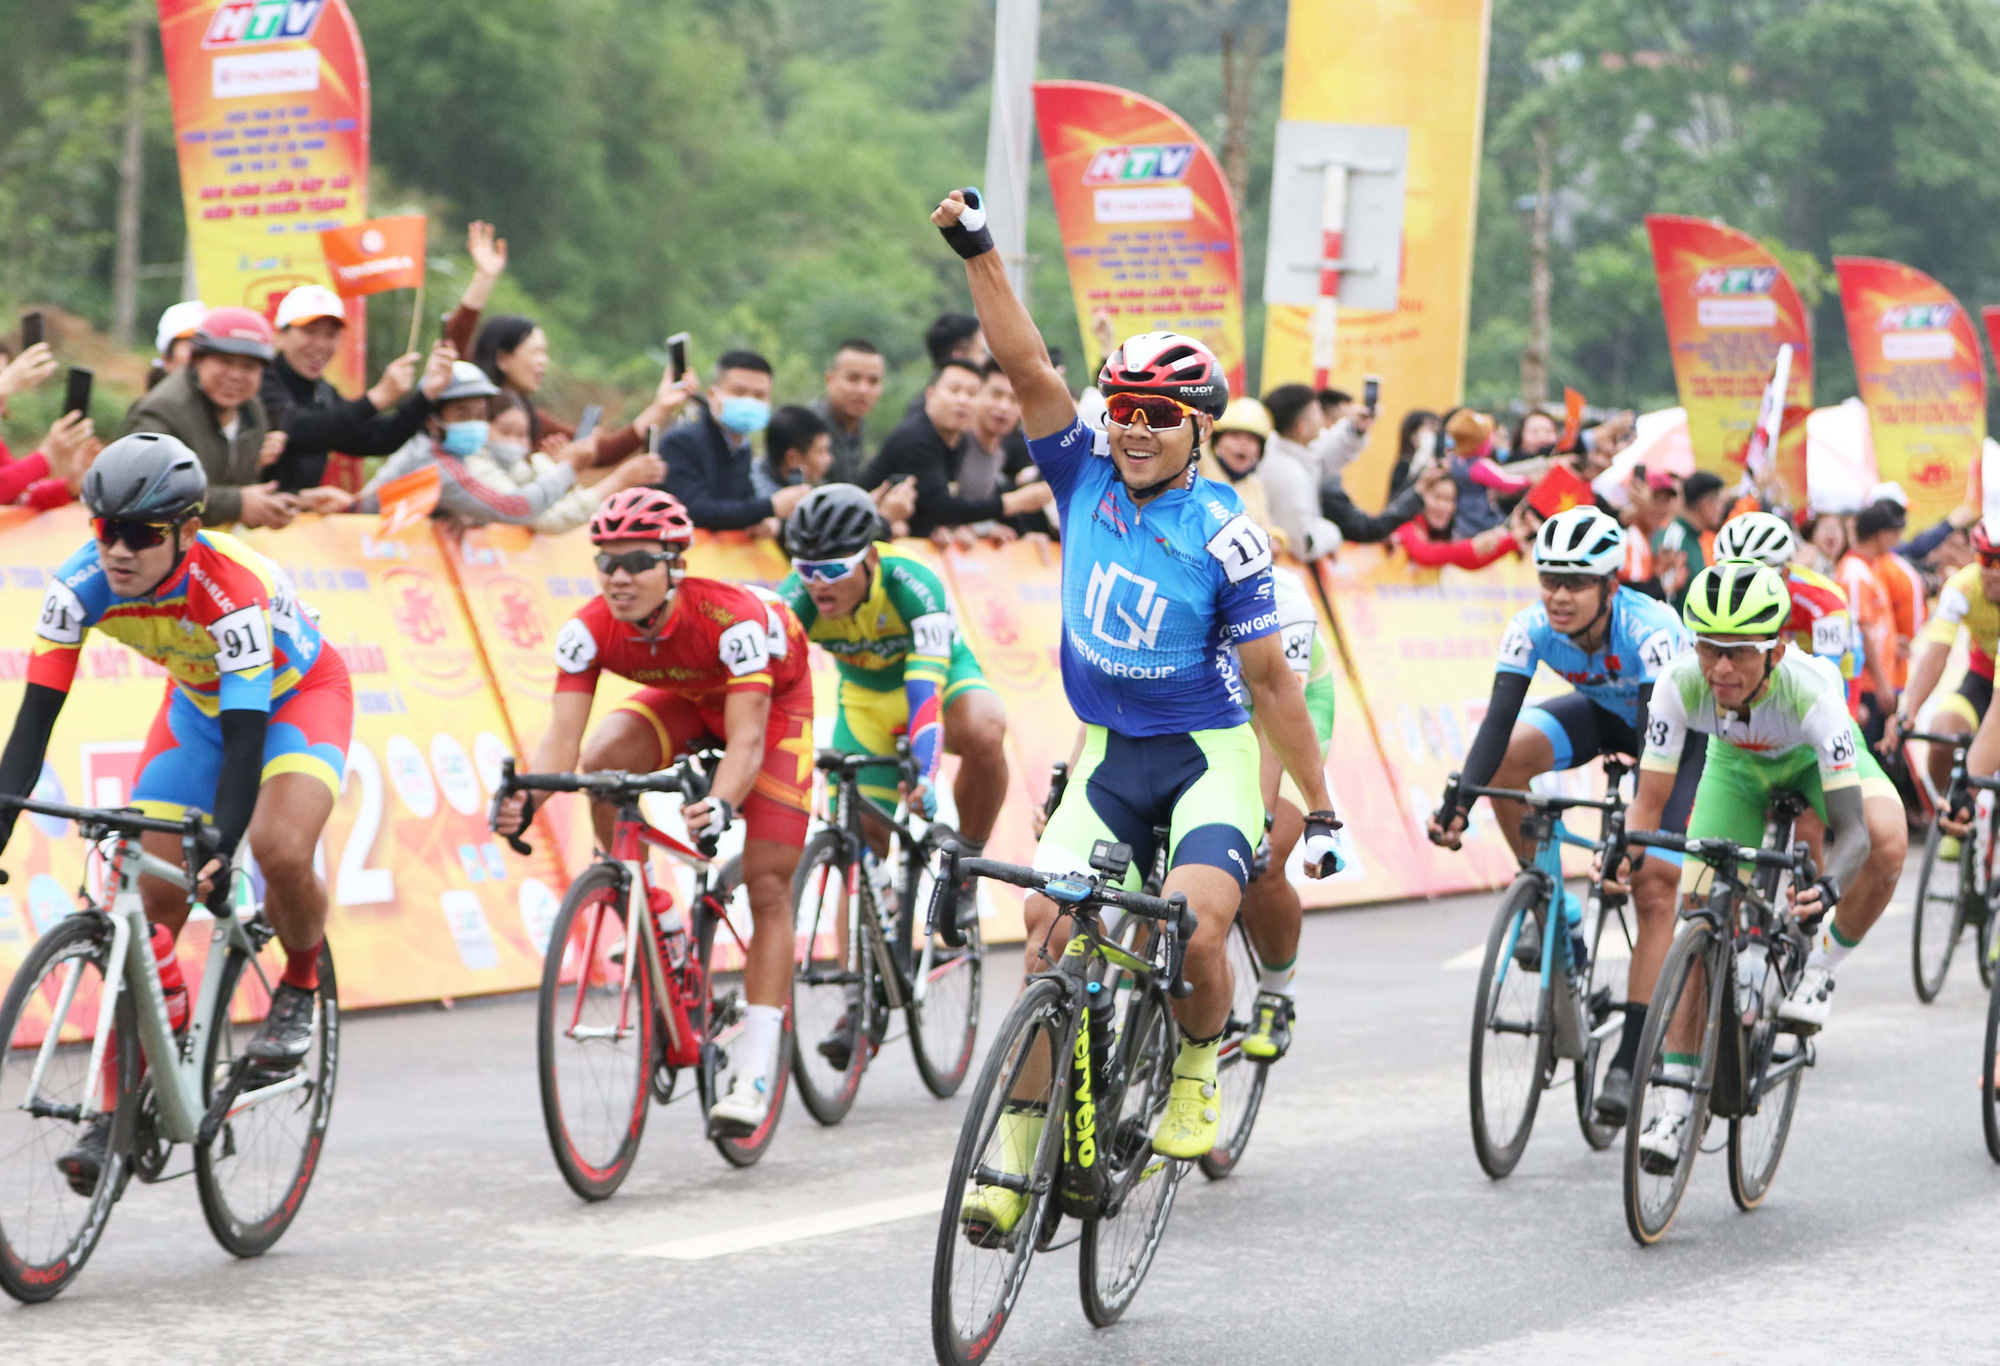 Cyclist Le Nguyet Minh of Ho Chi Minh City New Group reacts after finishing first in the opening stage at the HTV Cup national cycling tournament in Cao Bang Province, Vietnam, April 6, 2021. Photo: T.P. / Tuoi Tre